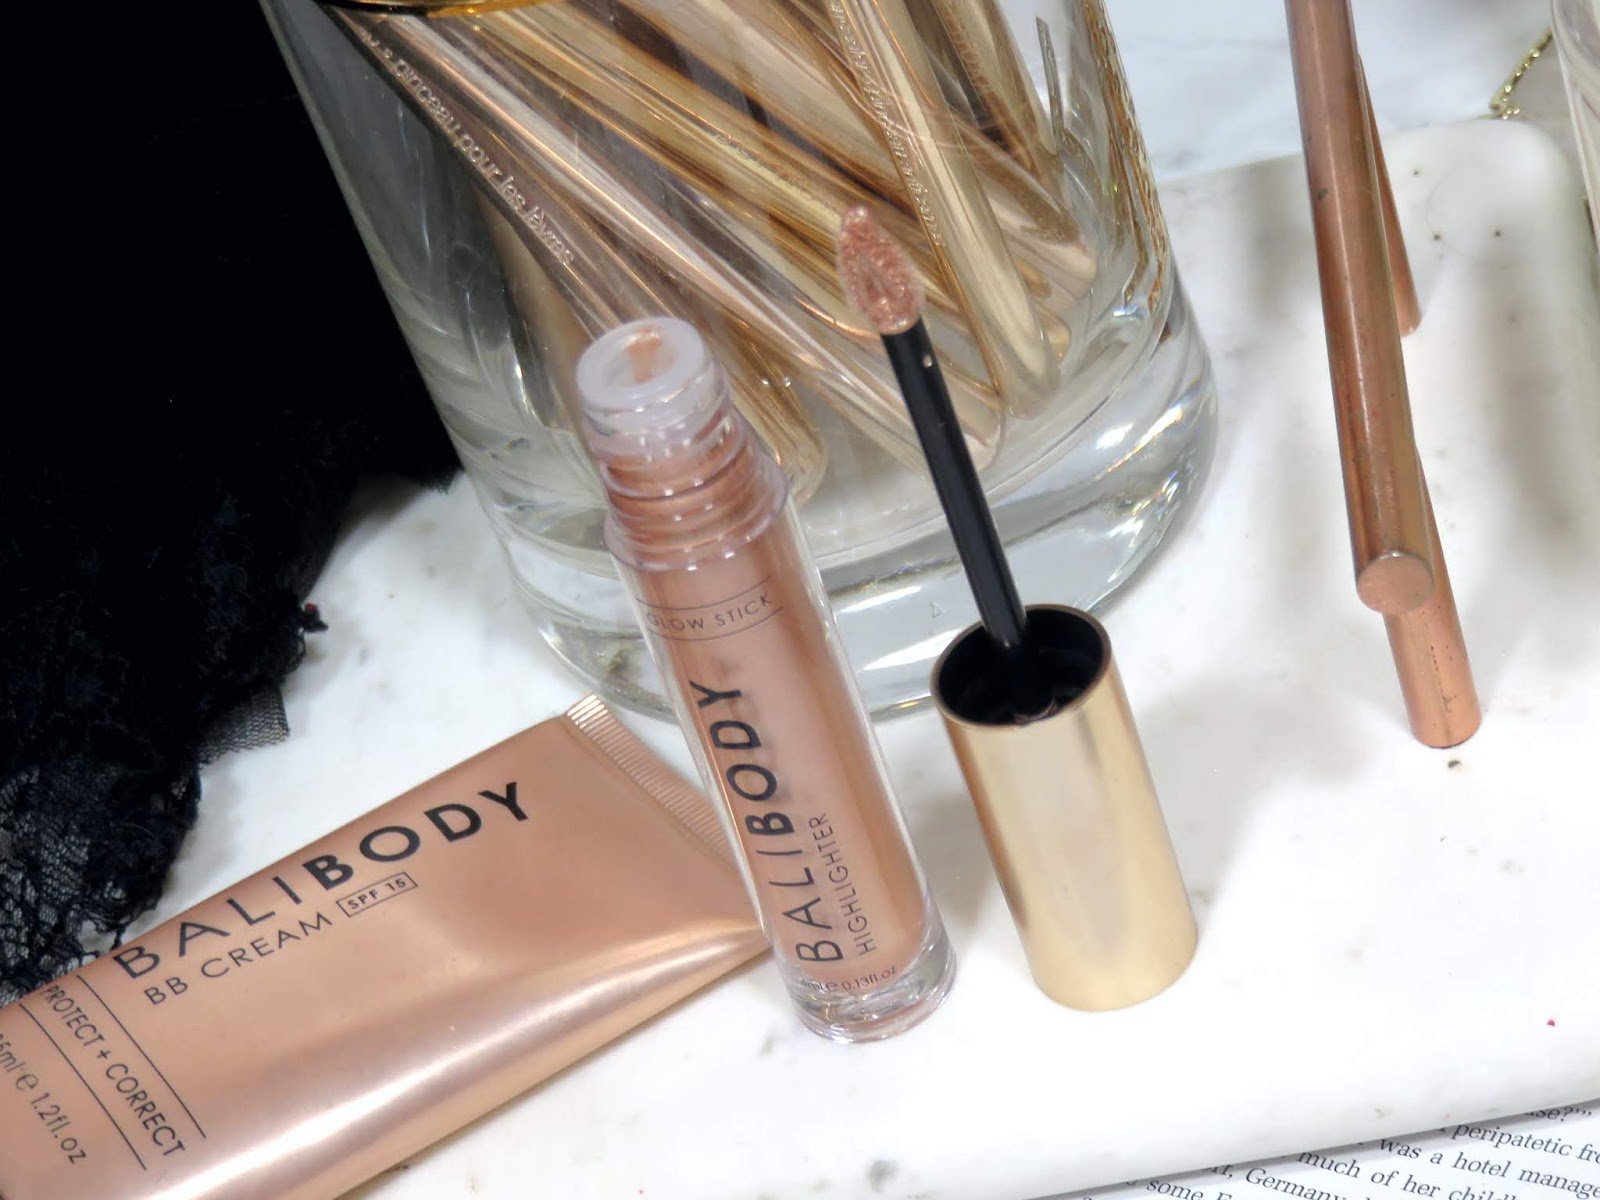 Bali Body Highlighter Sticks Review and Swatches